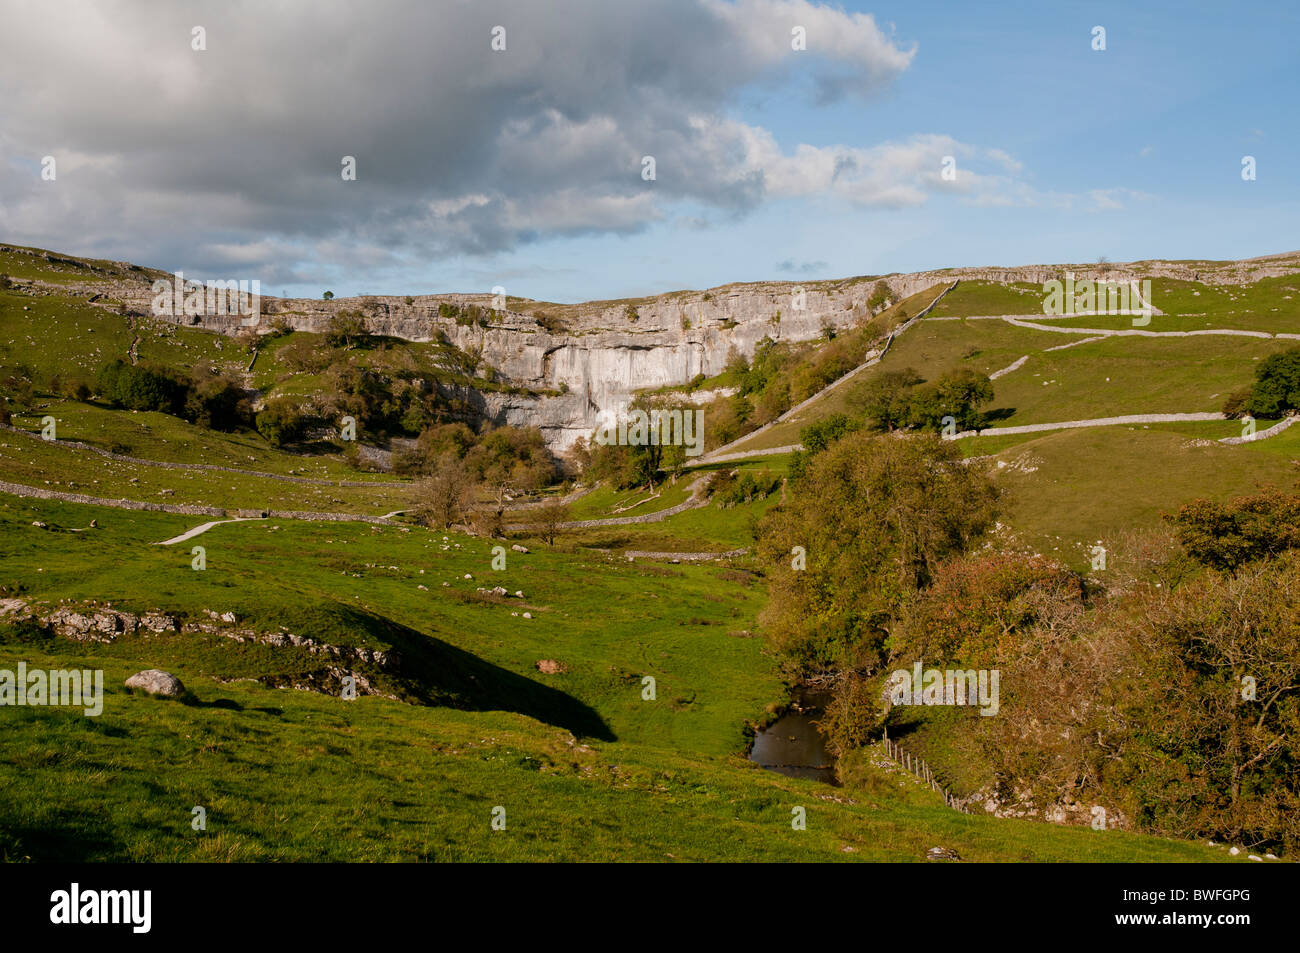 Malham, North Yorkshire, United Kingdom. - Stock Image